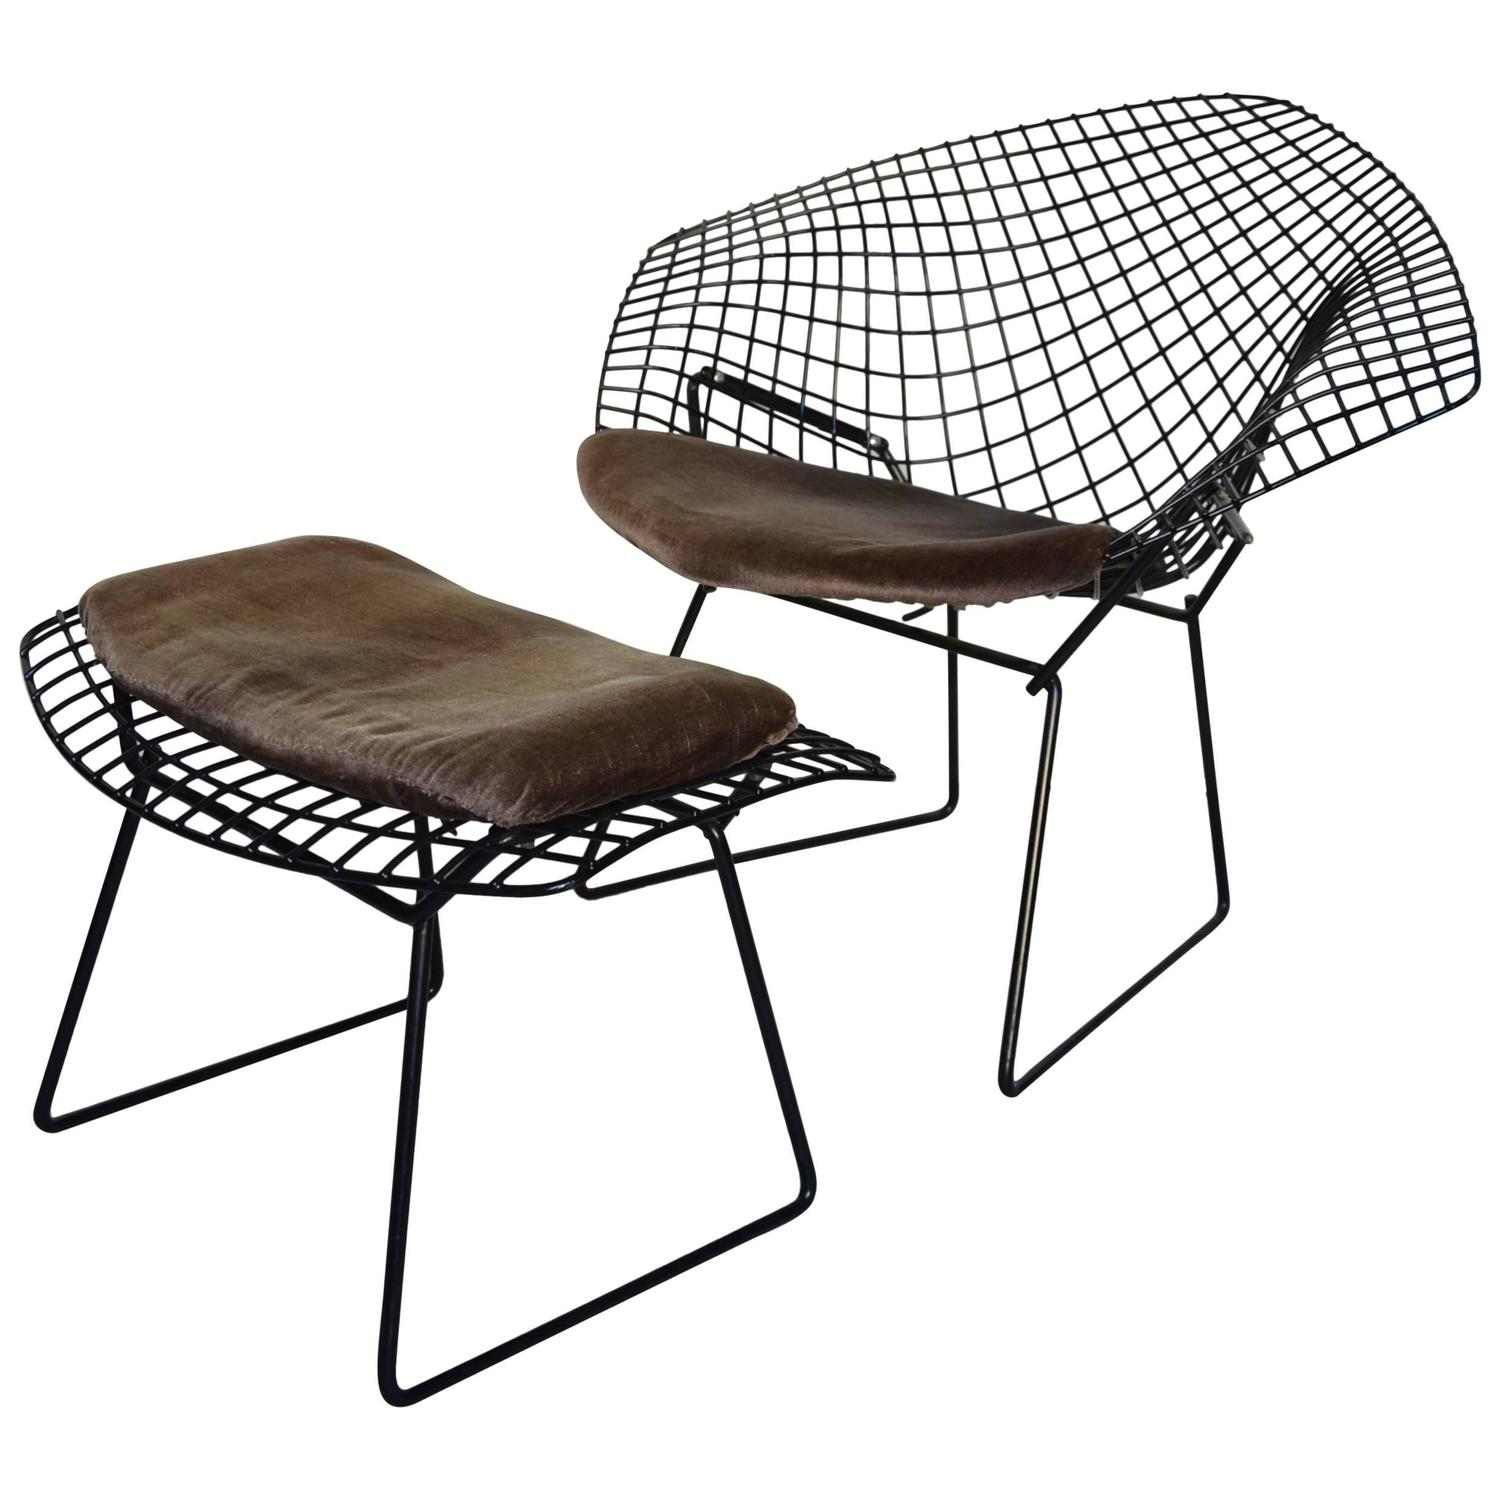 High Quality Harry Bertoia Diamond Chair And Footstool Knoll Edition At 1stdibs